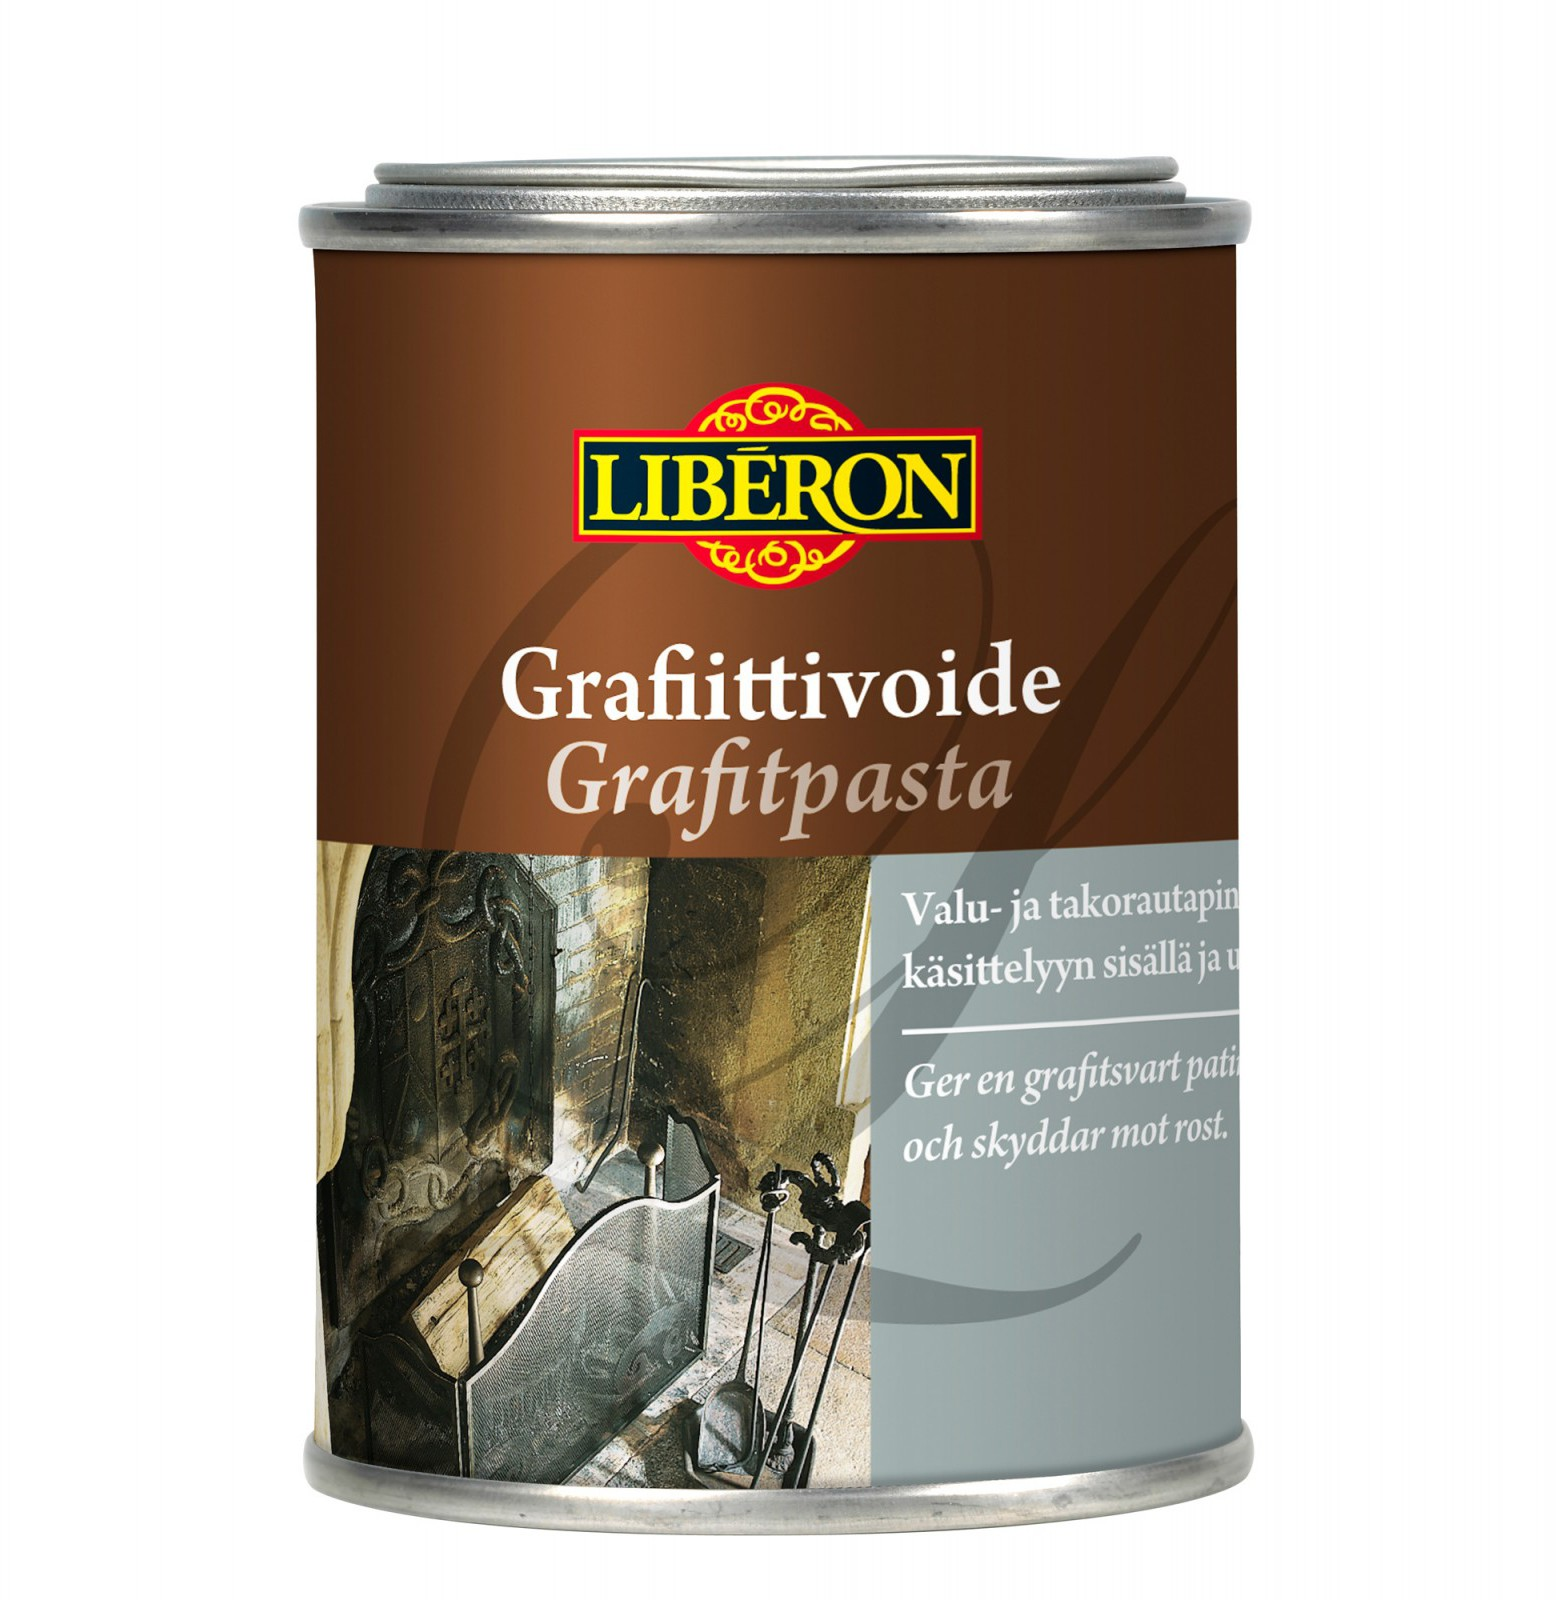 Grafiittivoide Liberon 250 ml (016859)